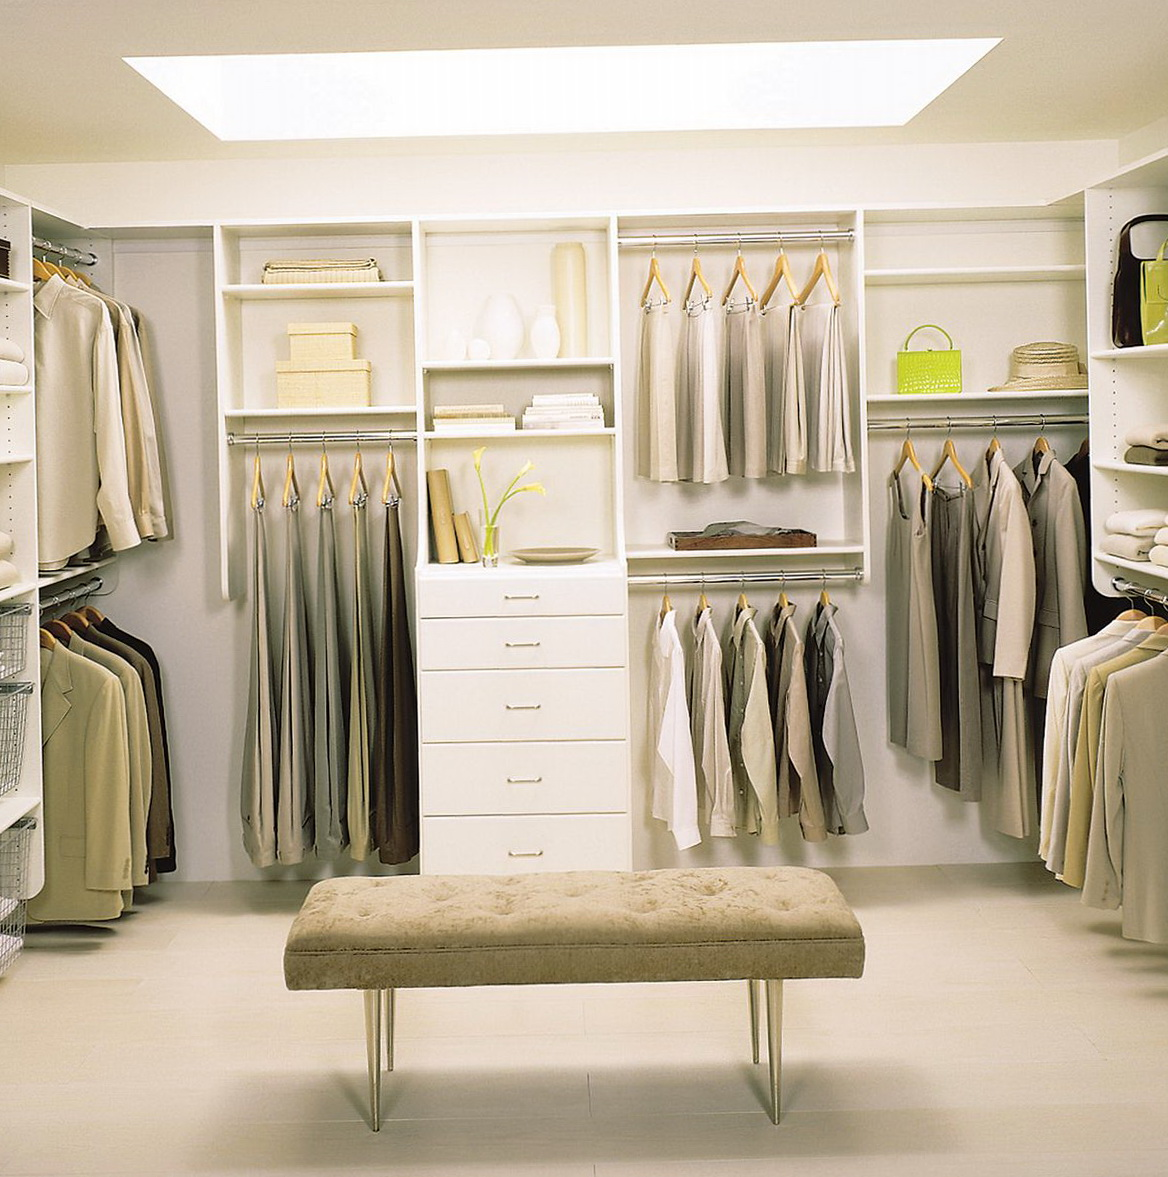 Small walk in closet dimensions home design ideas for Walk in closet measurements